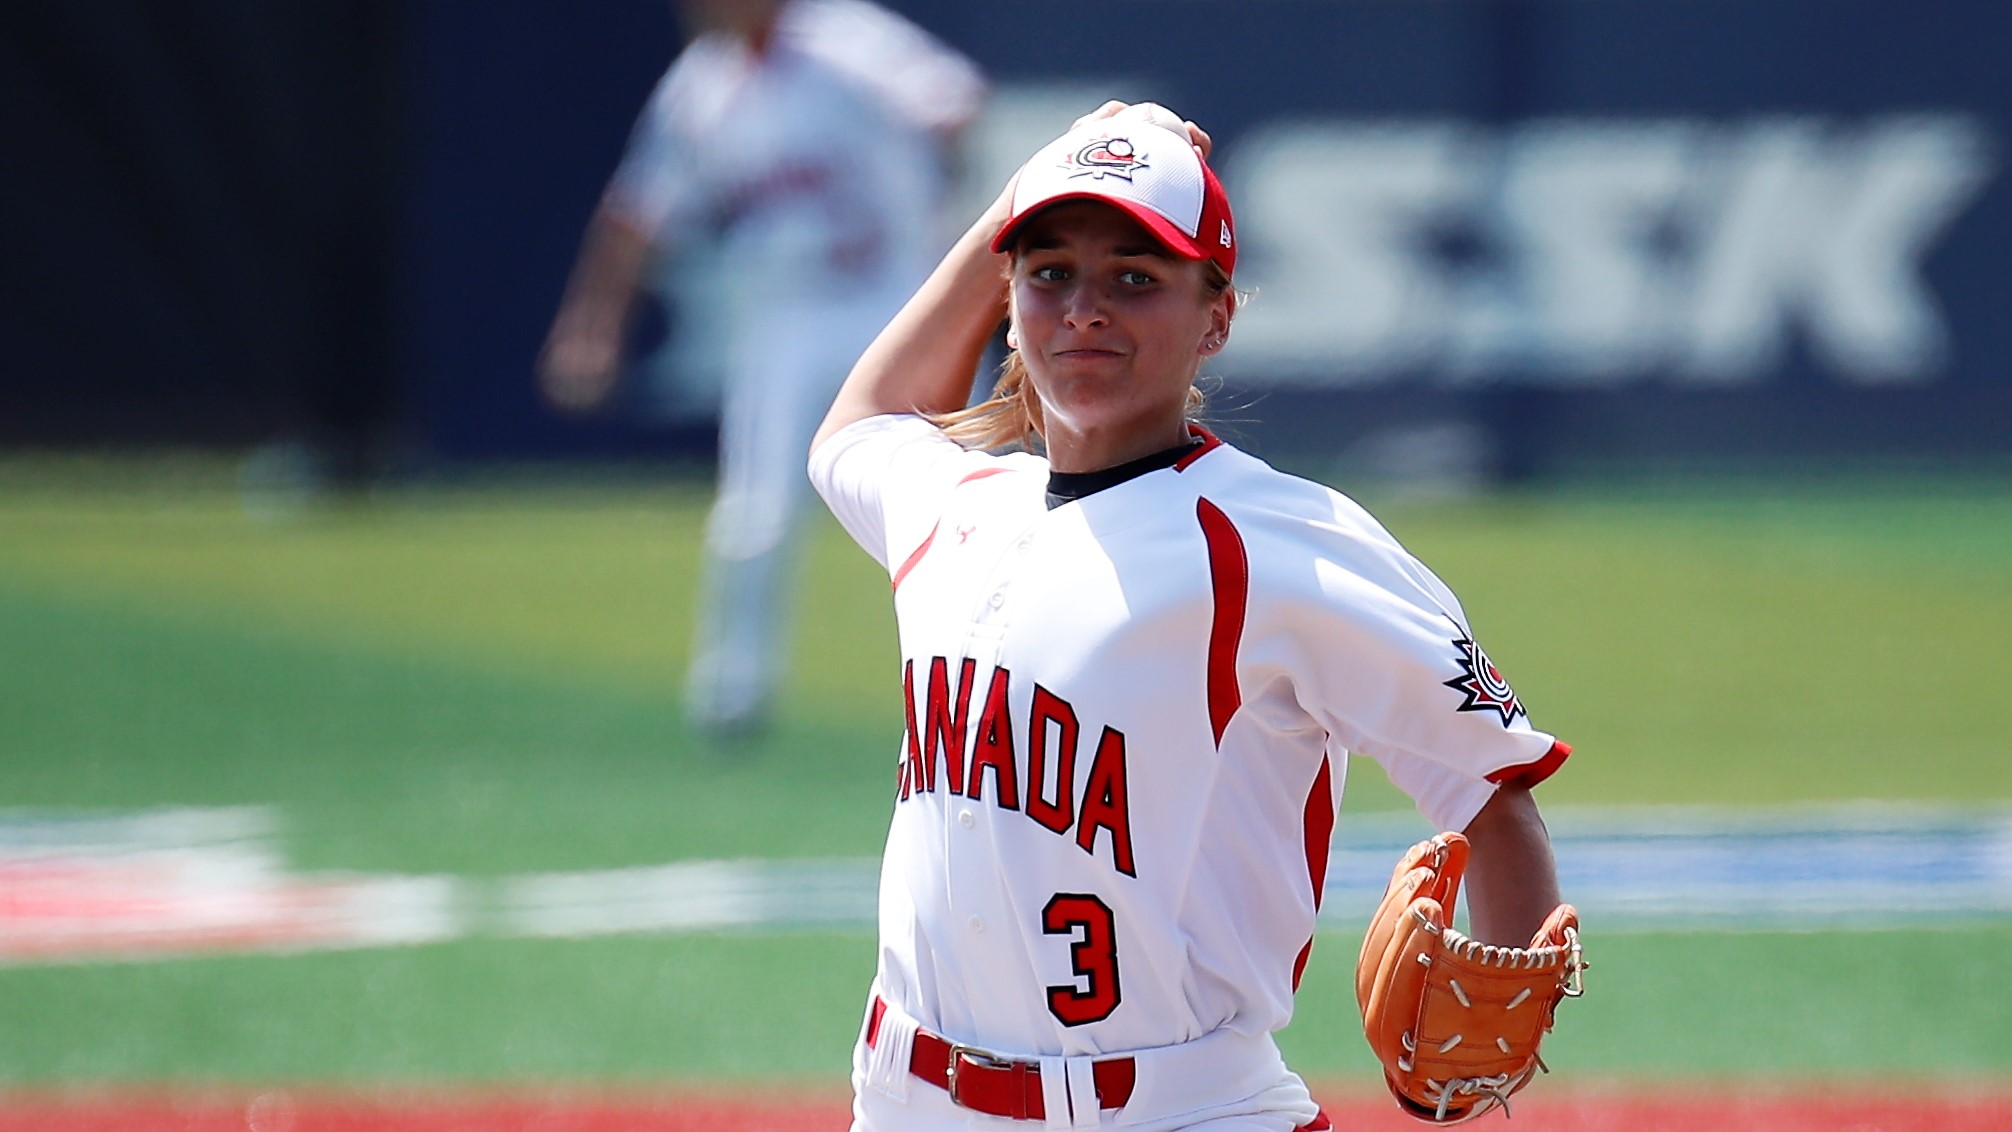 Emma Carr went the distance for Canada against the Dominican Republic